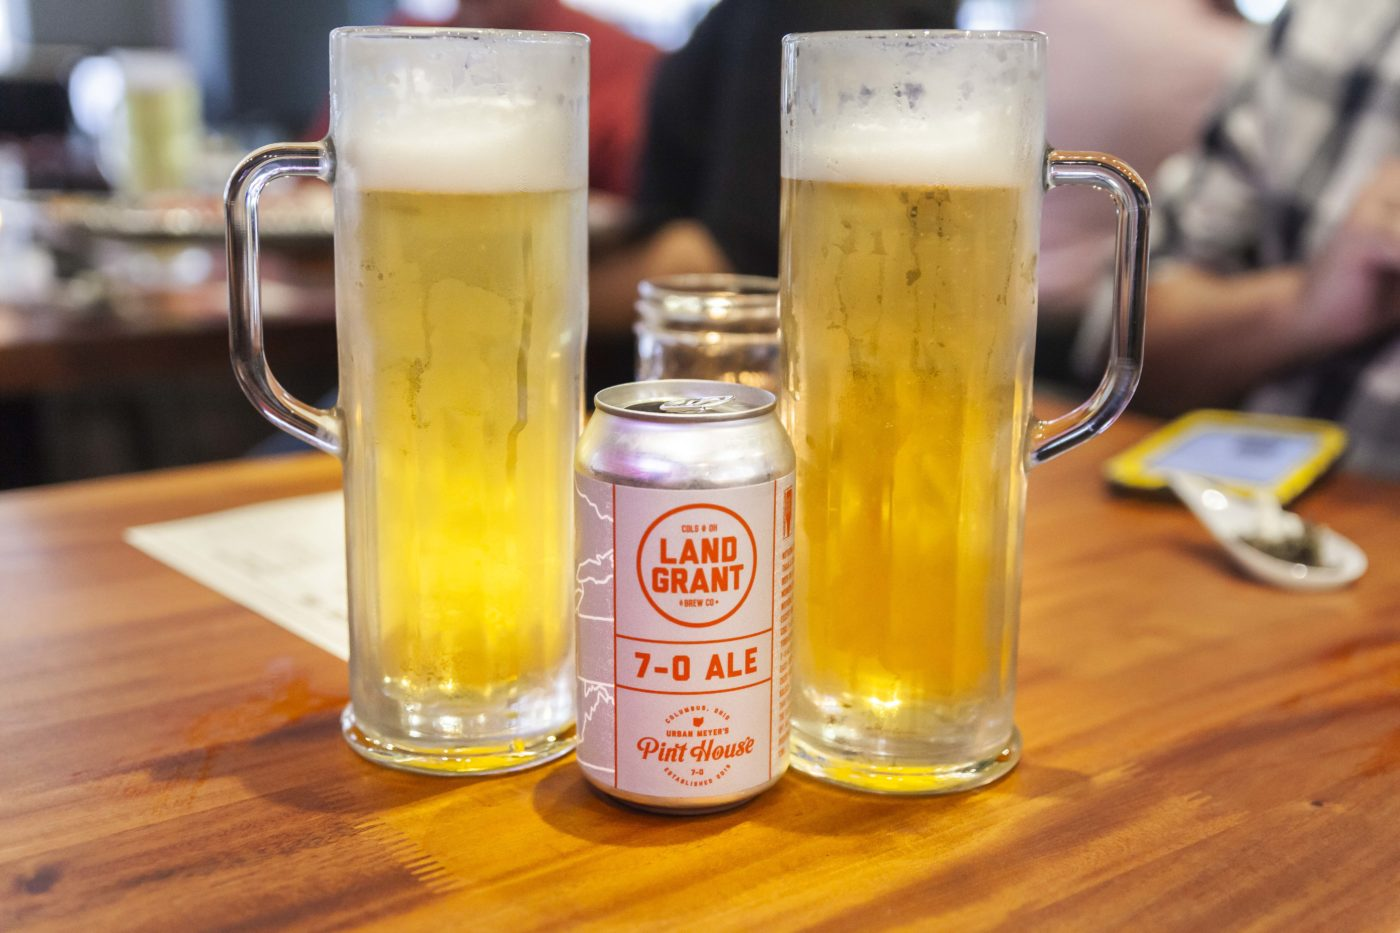 Land-Grant 7-0 Ale served at Urban Meyer's Pint House